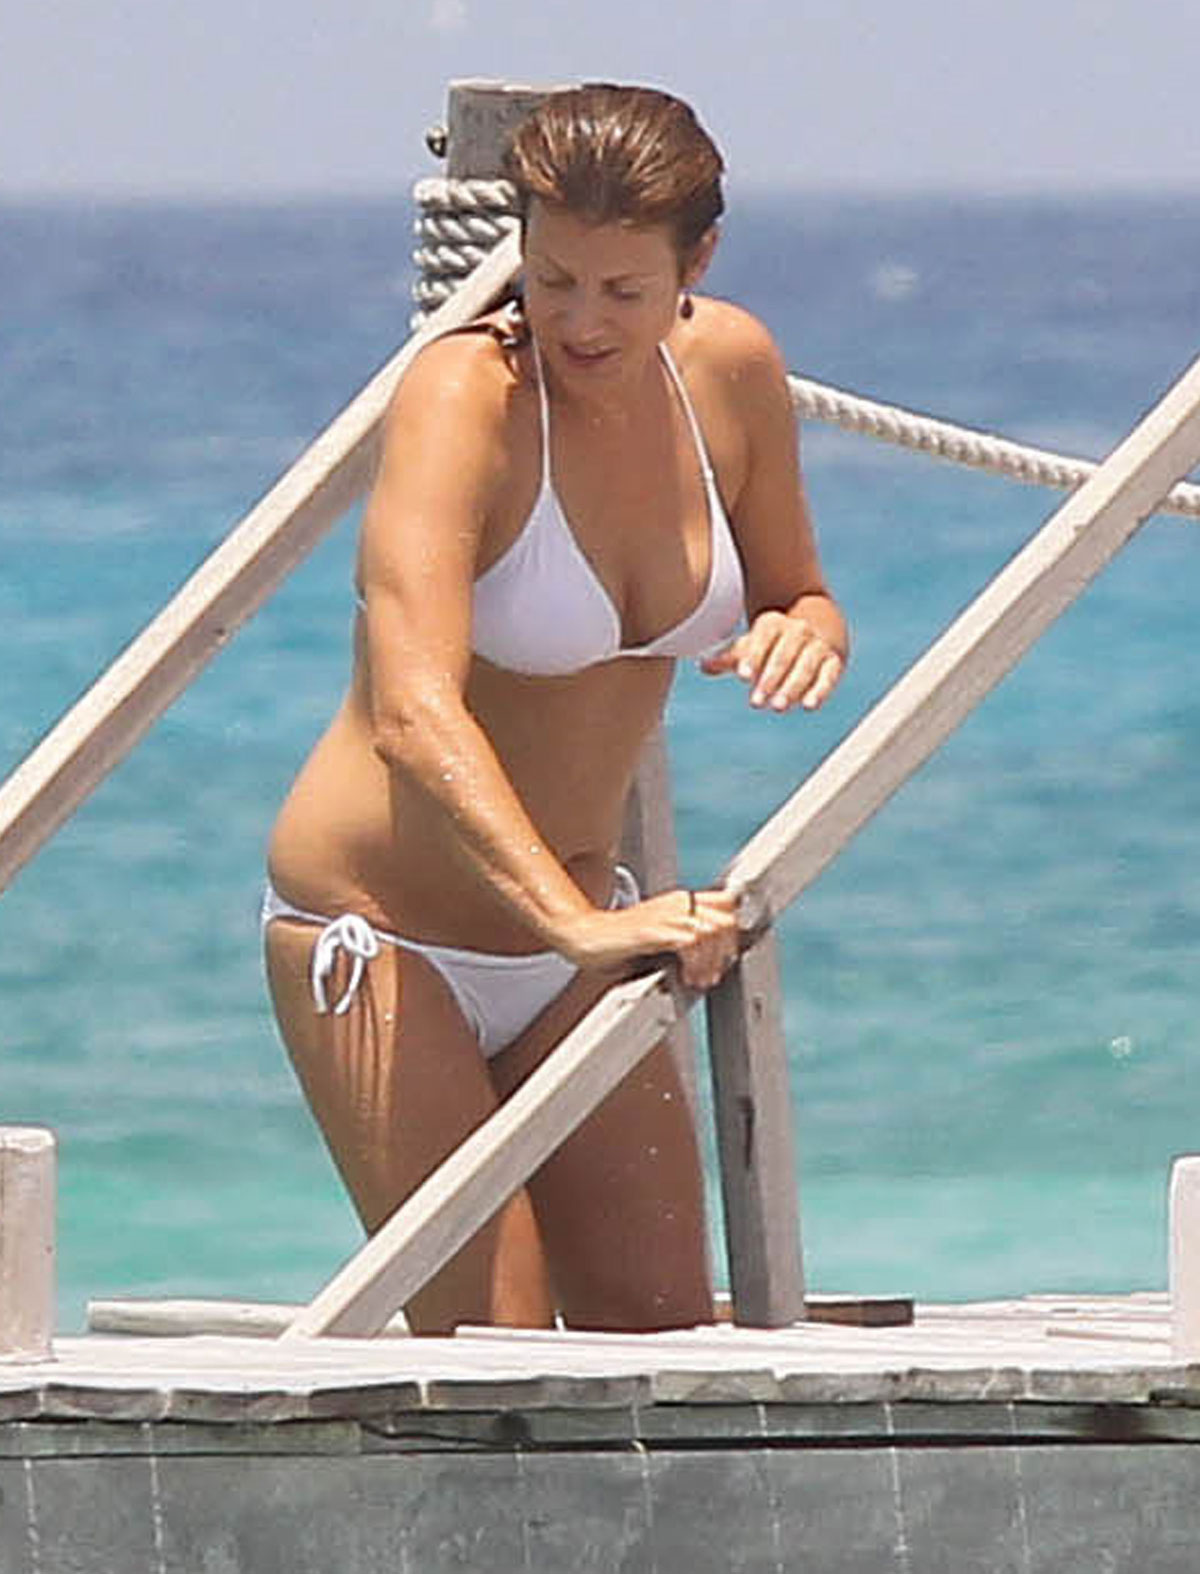 http://www.hawtcelebs.com/wp-content/uploads/2012/07/KATE-WALSH-in-Bikini-at-the-Beach-in-Mexico-5.jpg